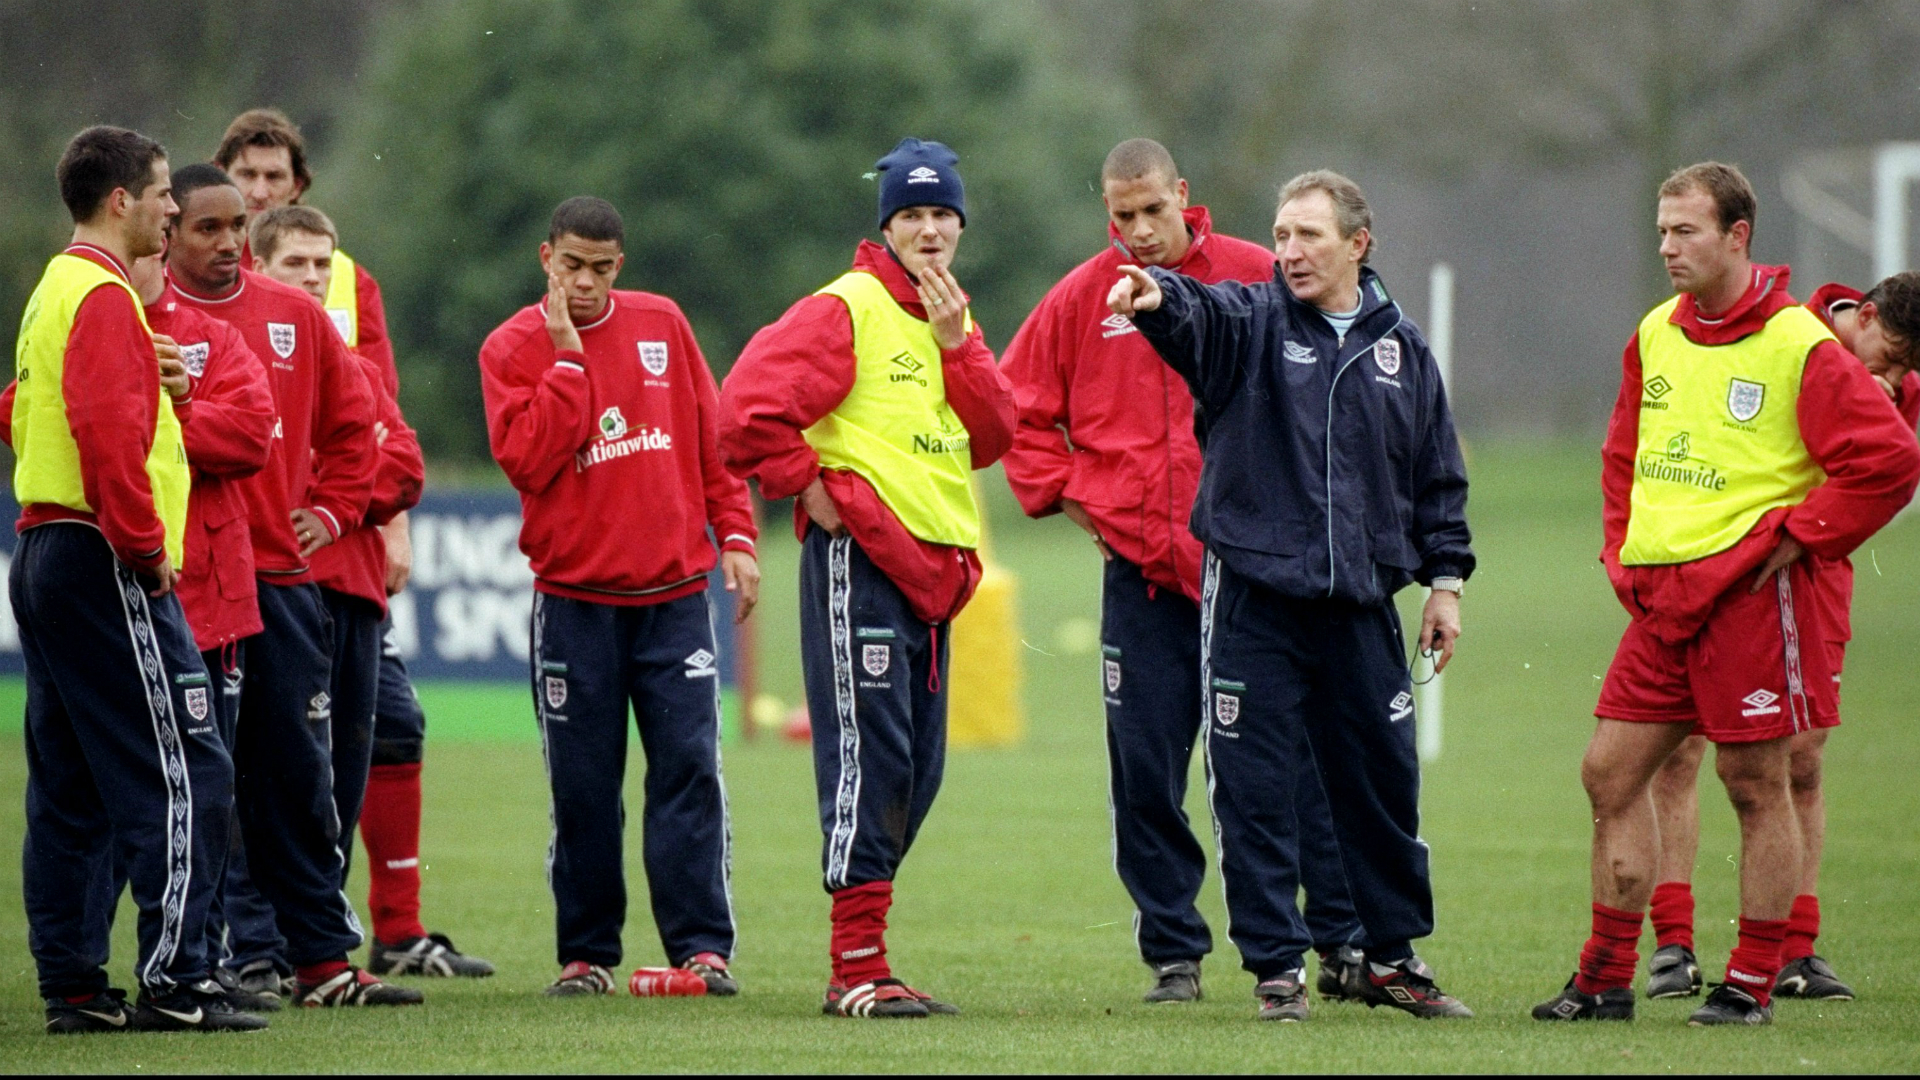 Howard Wilkinson England squad Alan Shearer David Beckham Rio Ferdinand